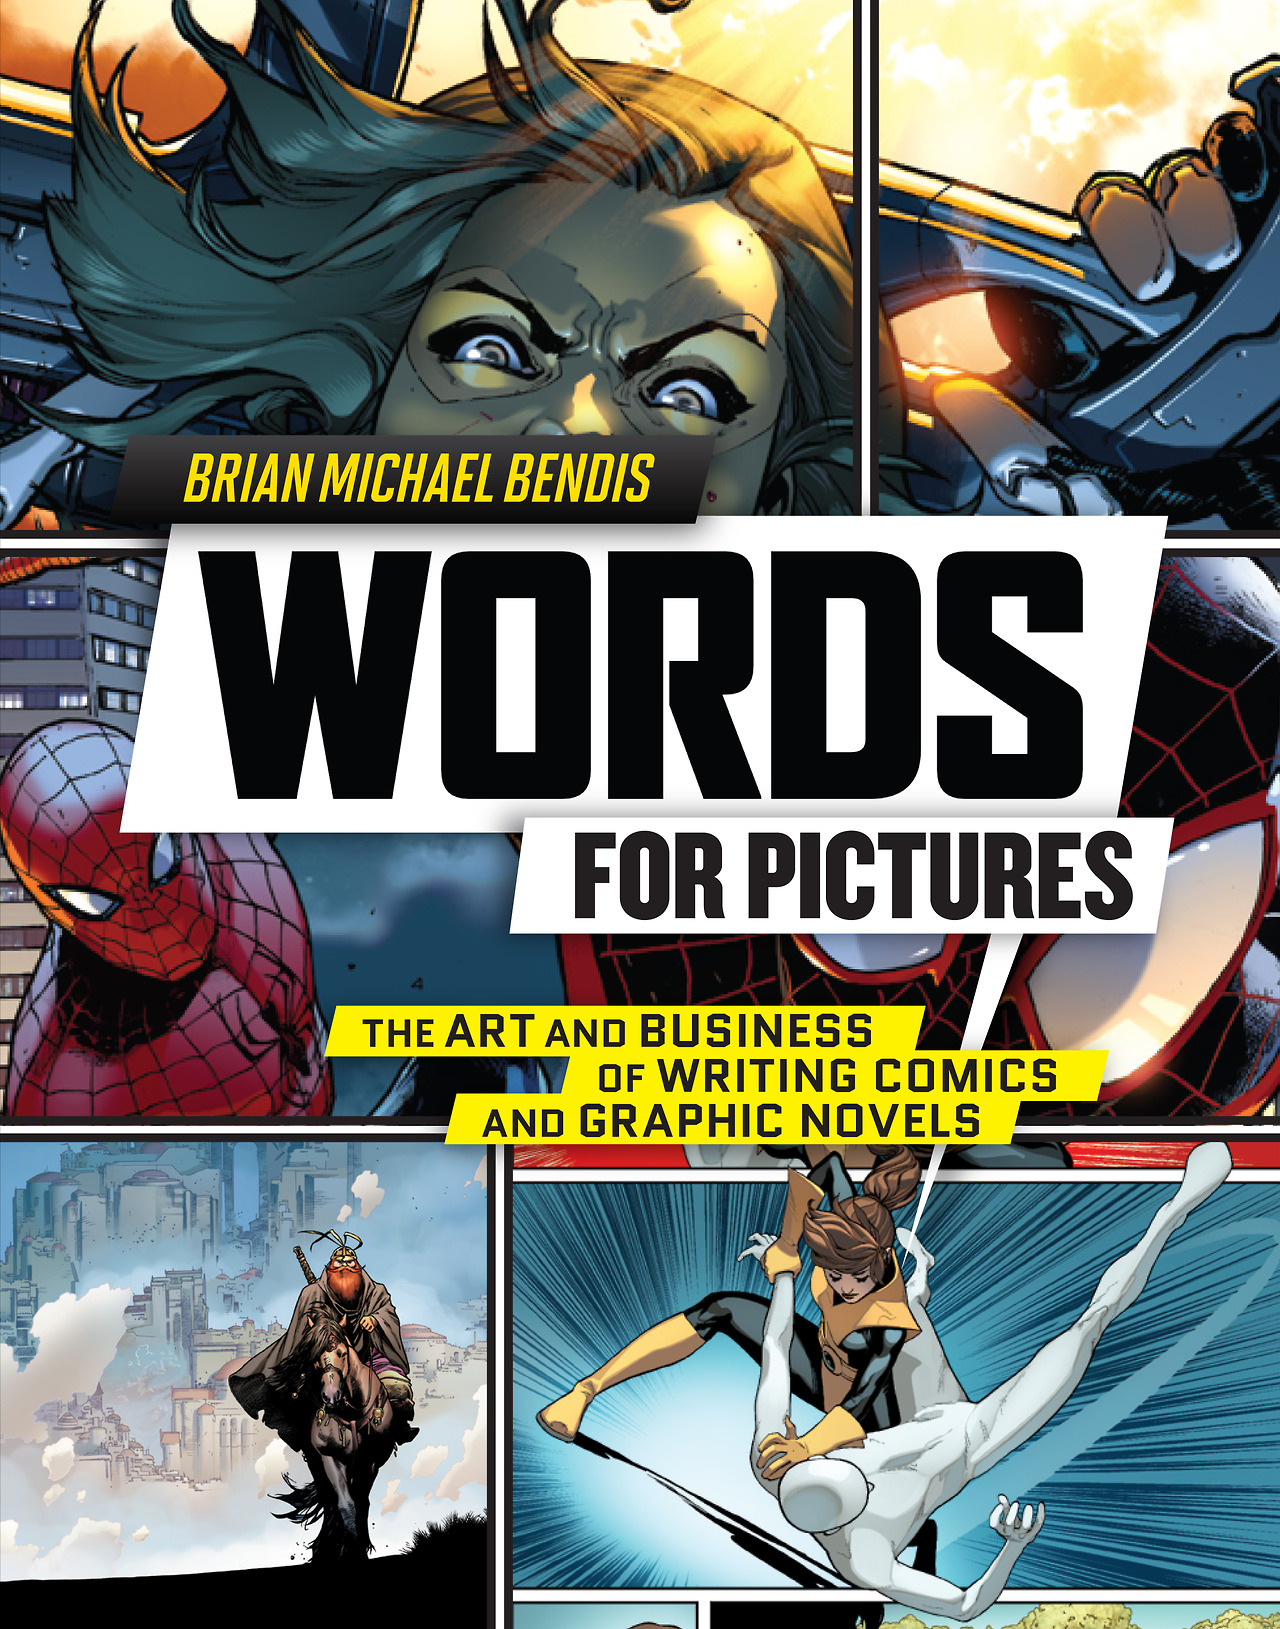 essay about graphic novels Graphic novel analysis faq edit 0 48 it's an essay on visual media remember it is an analysis of your graphic novel.